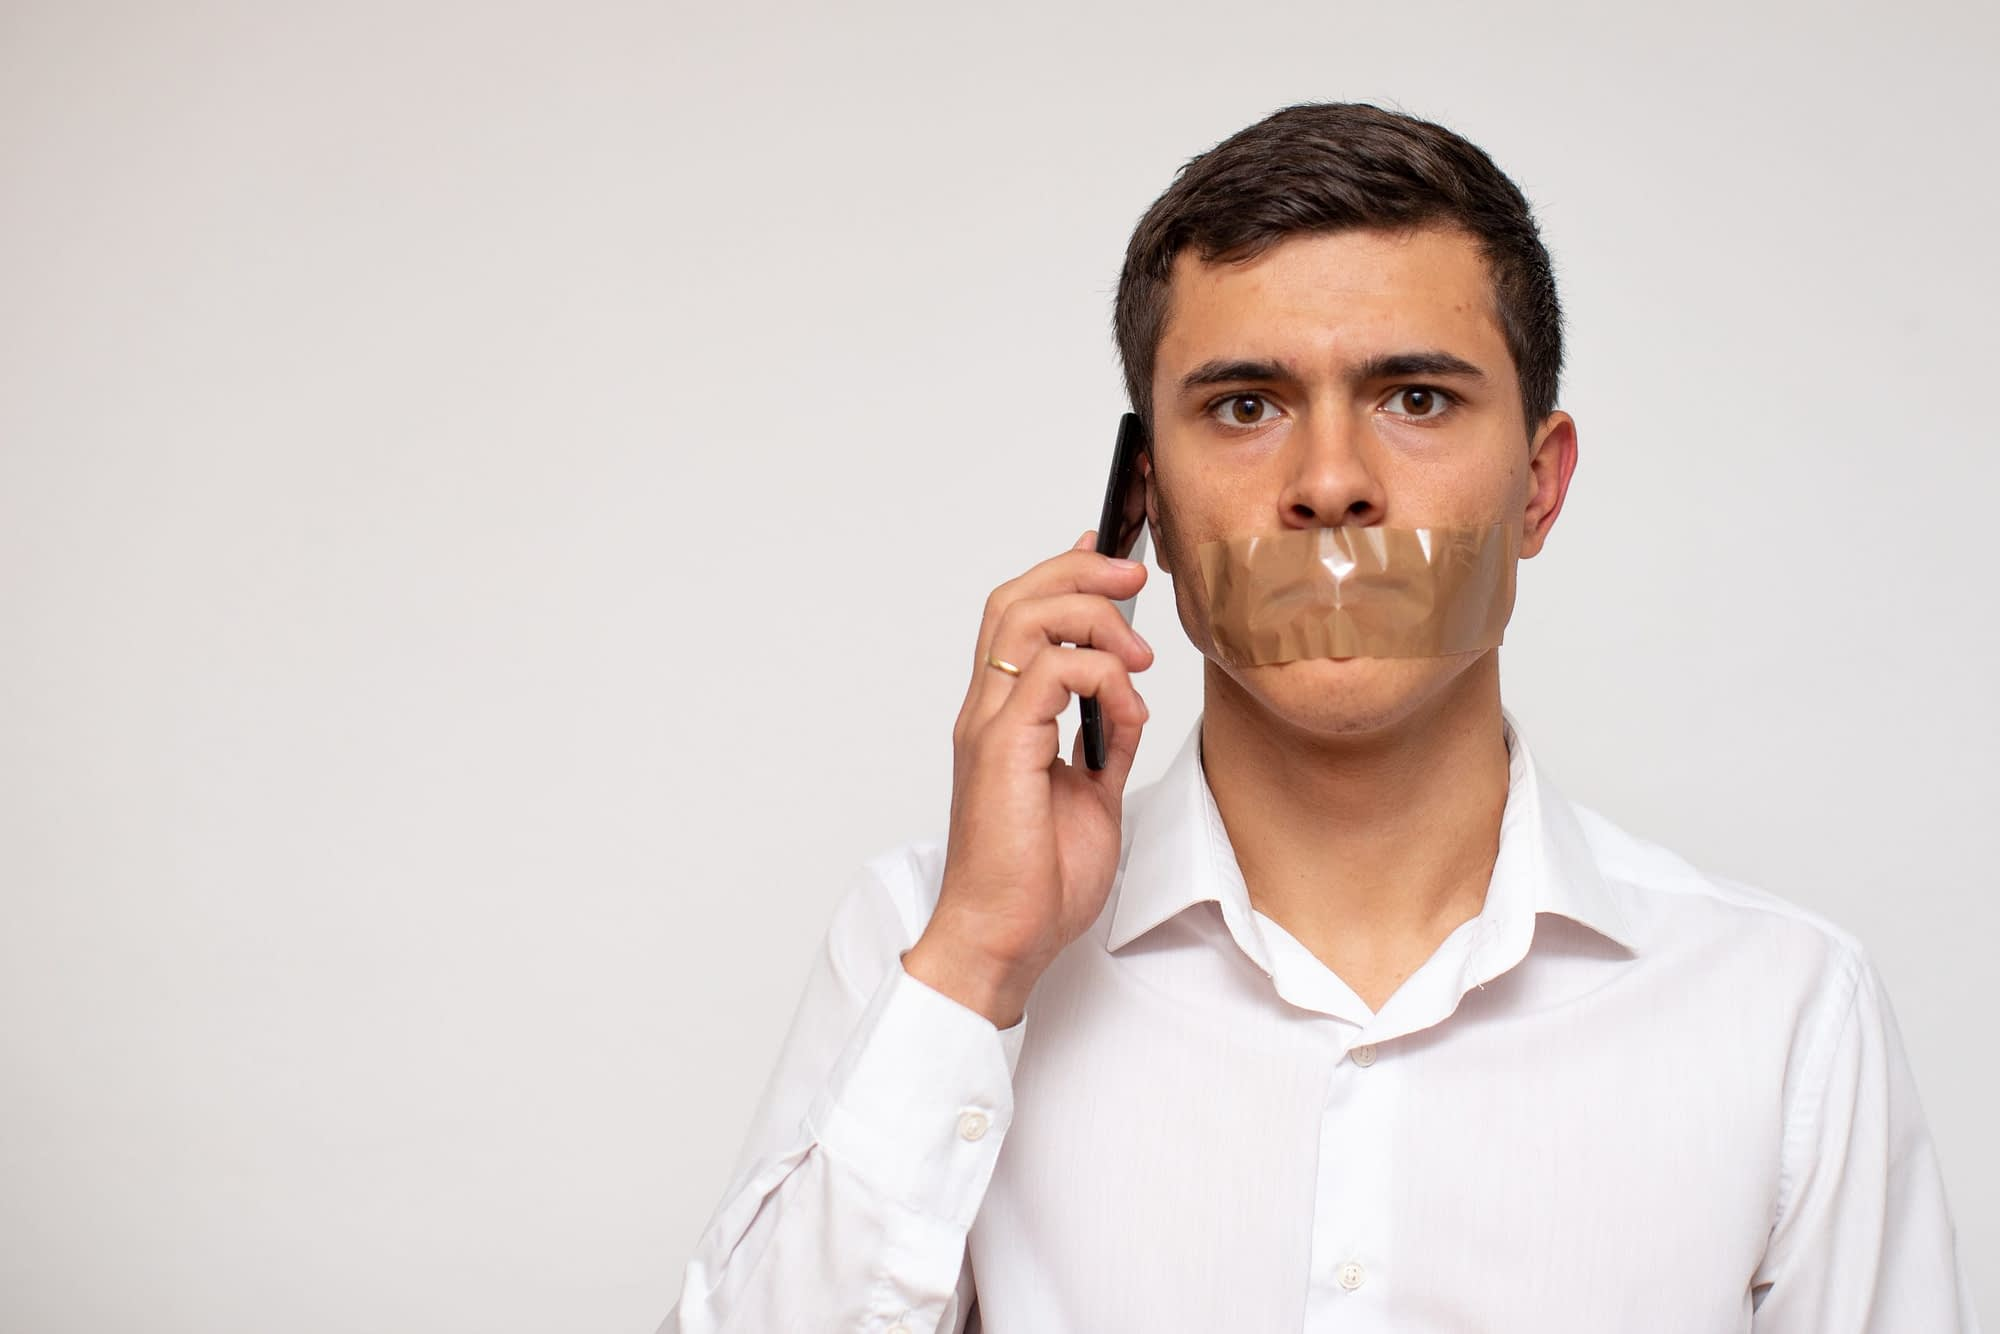 a guy on the phone with tape covering his mouth so he can't speak